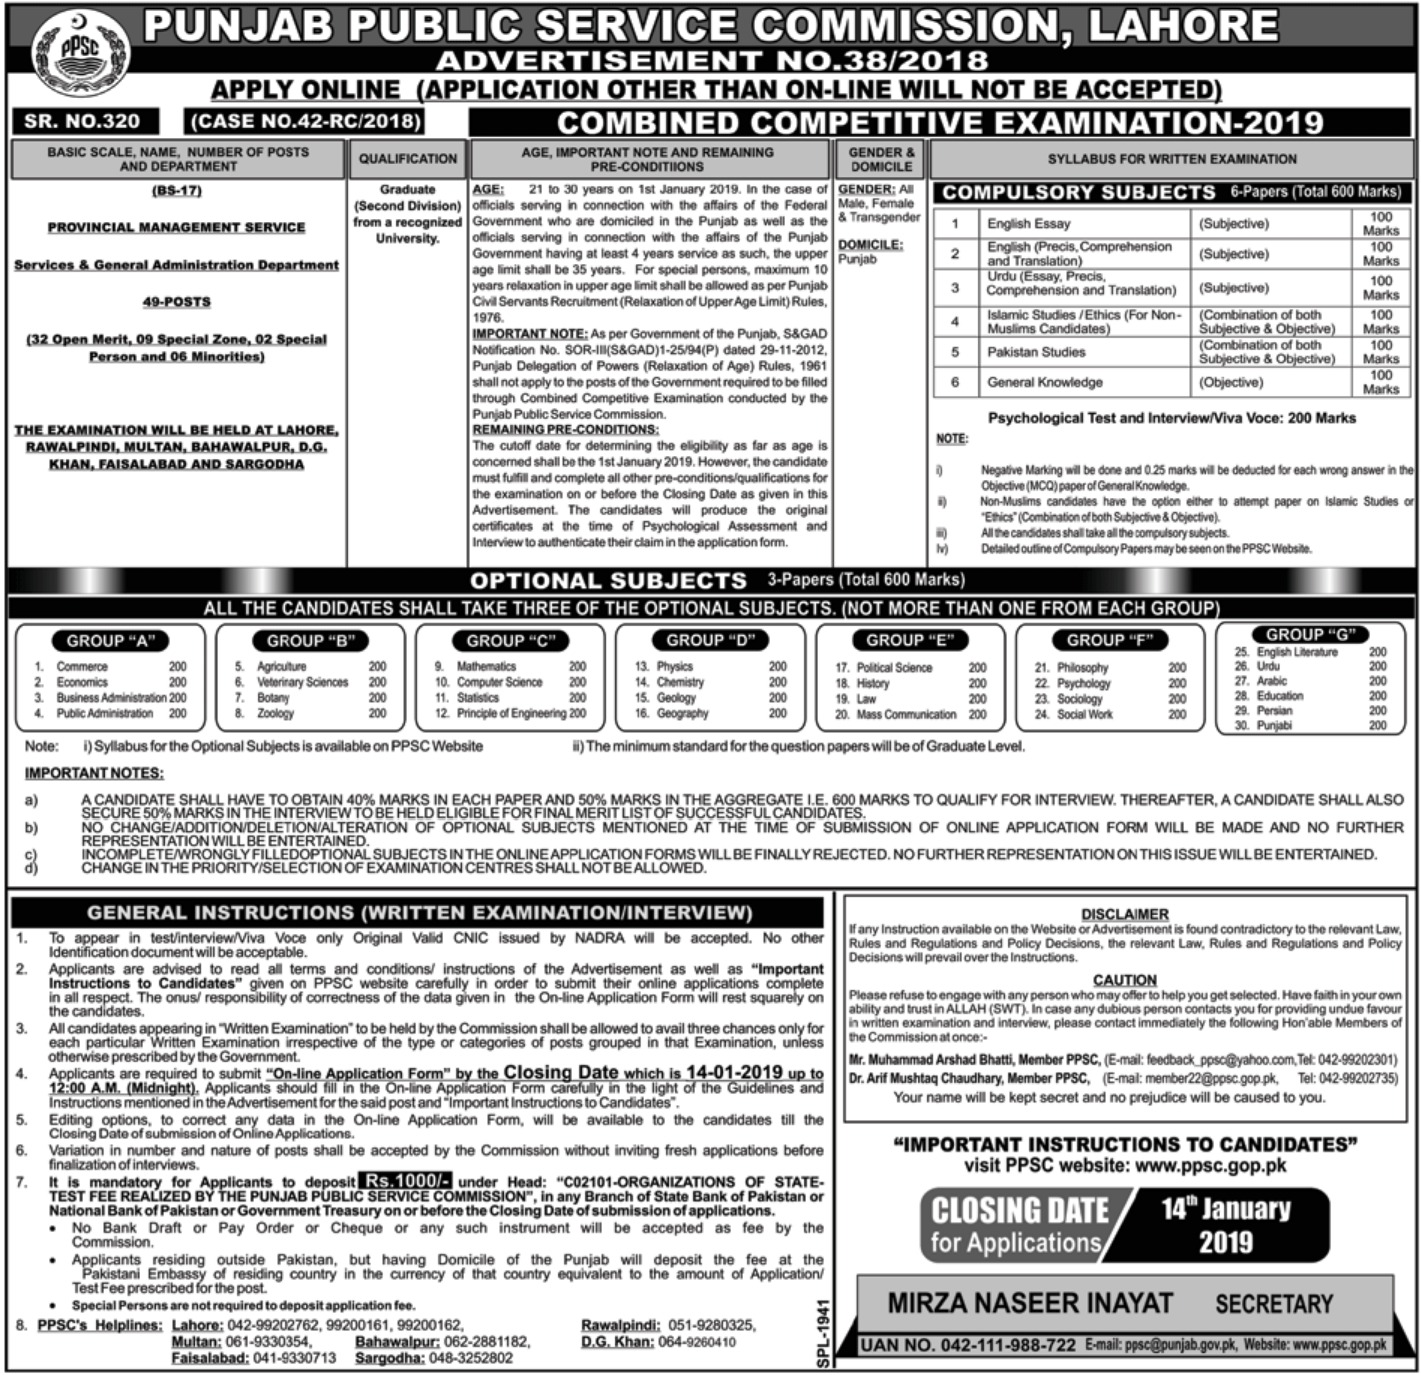 PPSC Jobs 2018 Punjab Public Service Commission